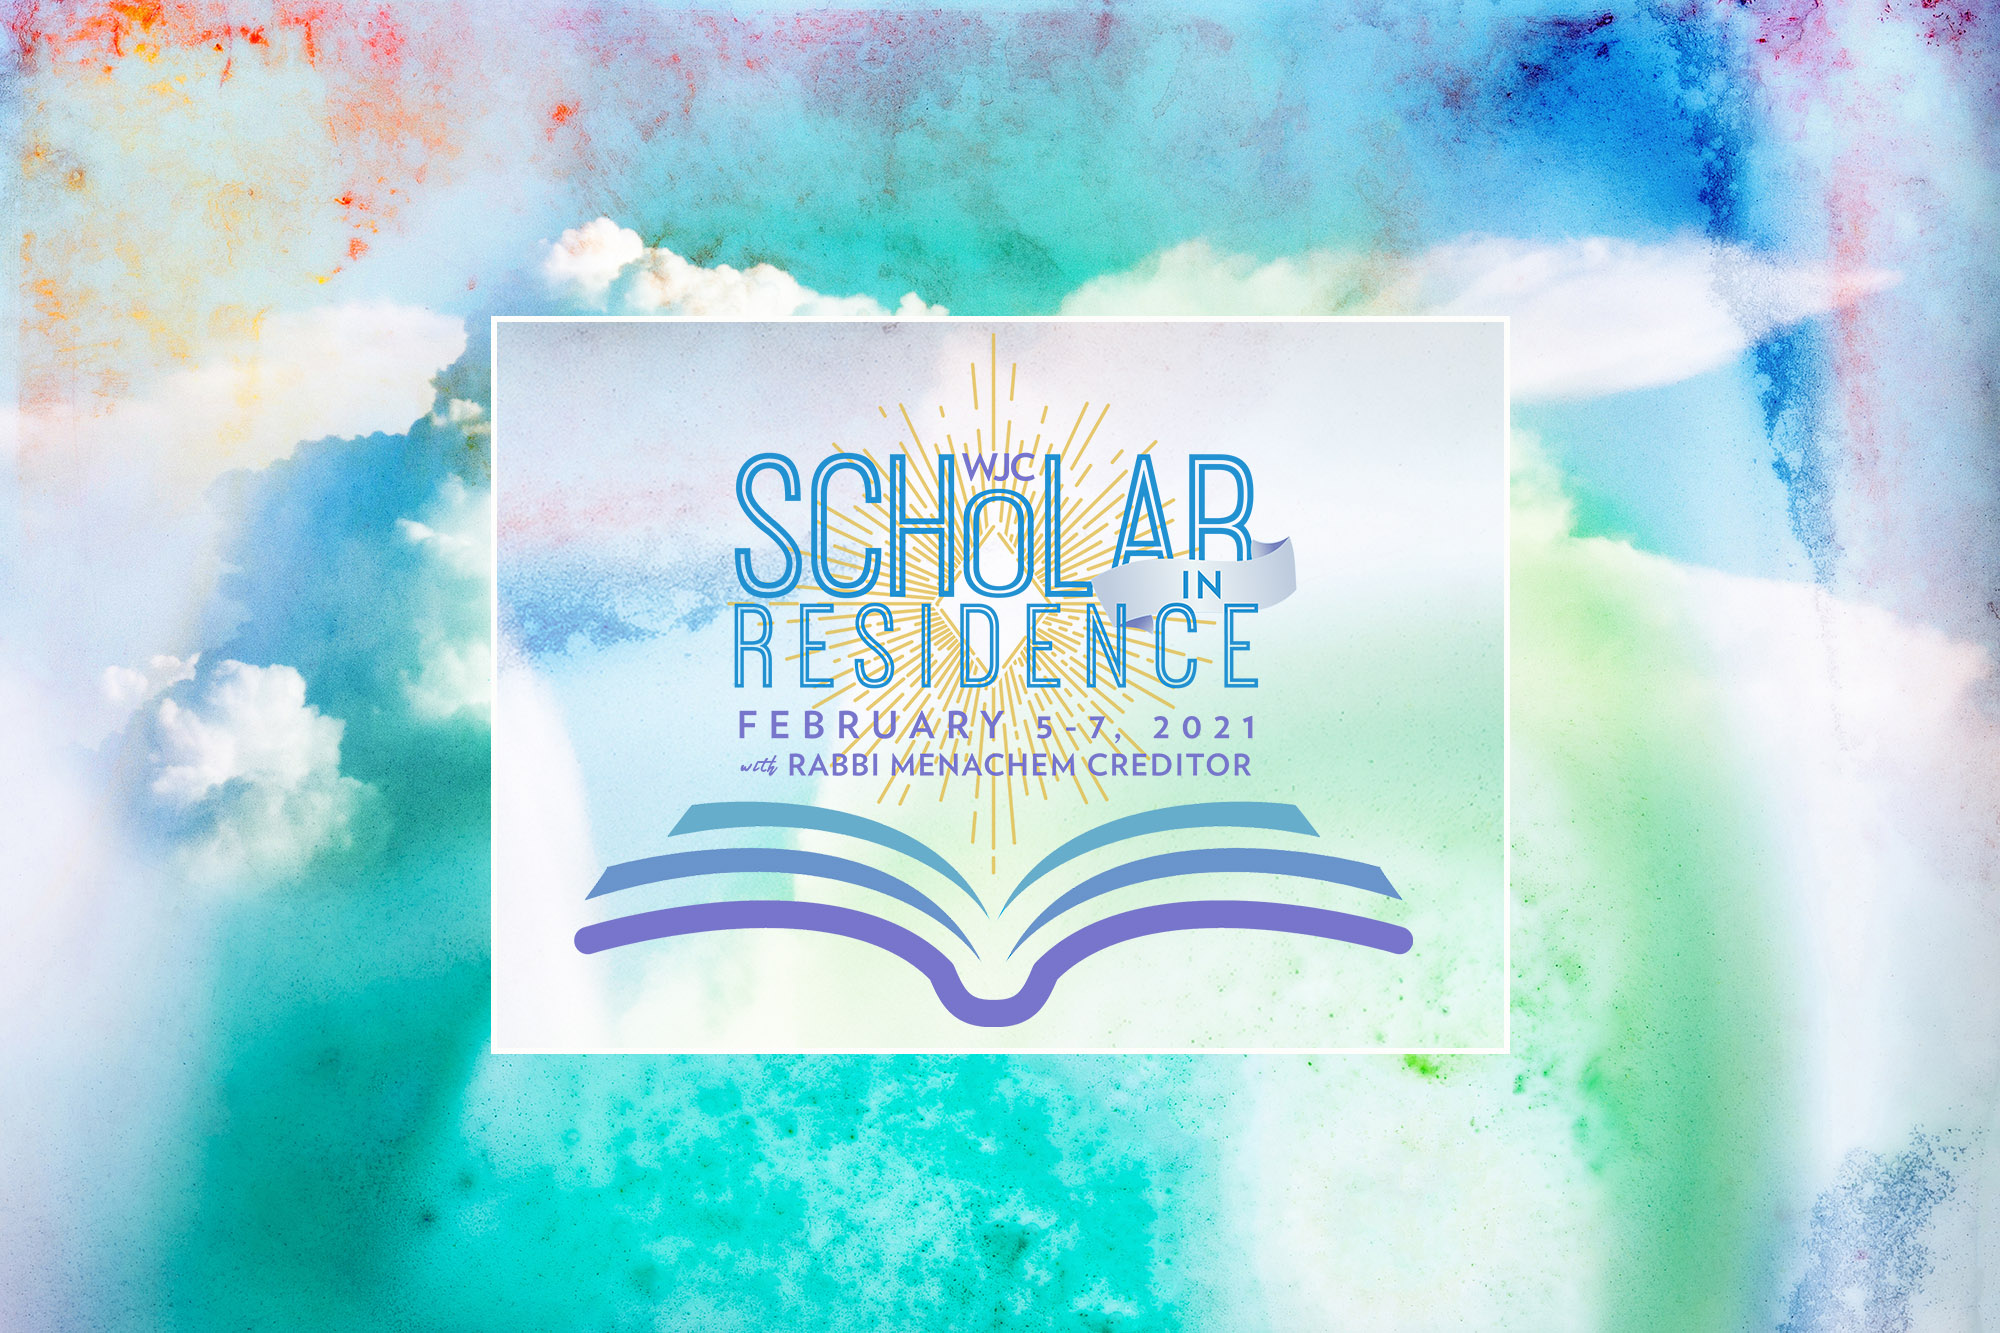 Scholar-in-Residence Weekend 2021